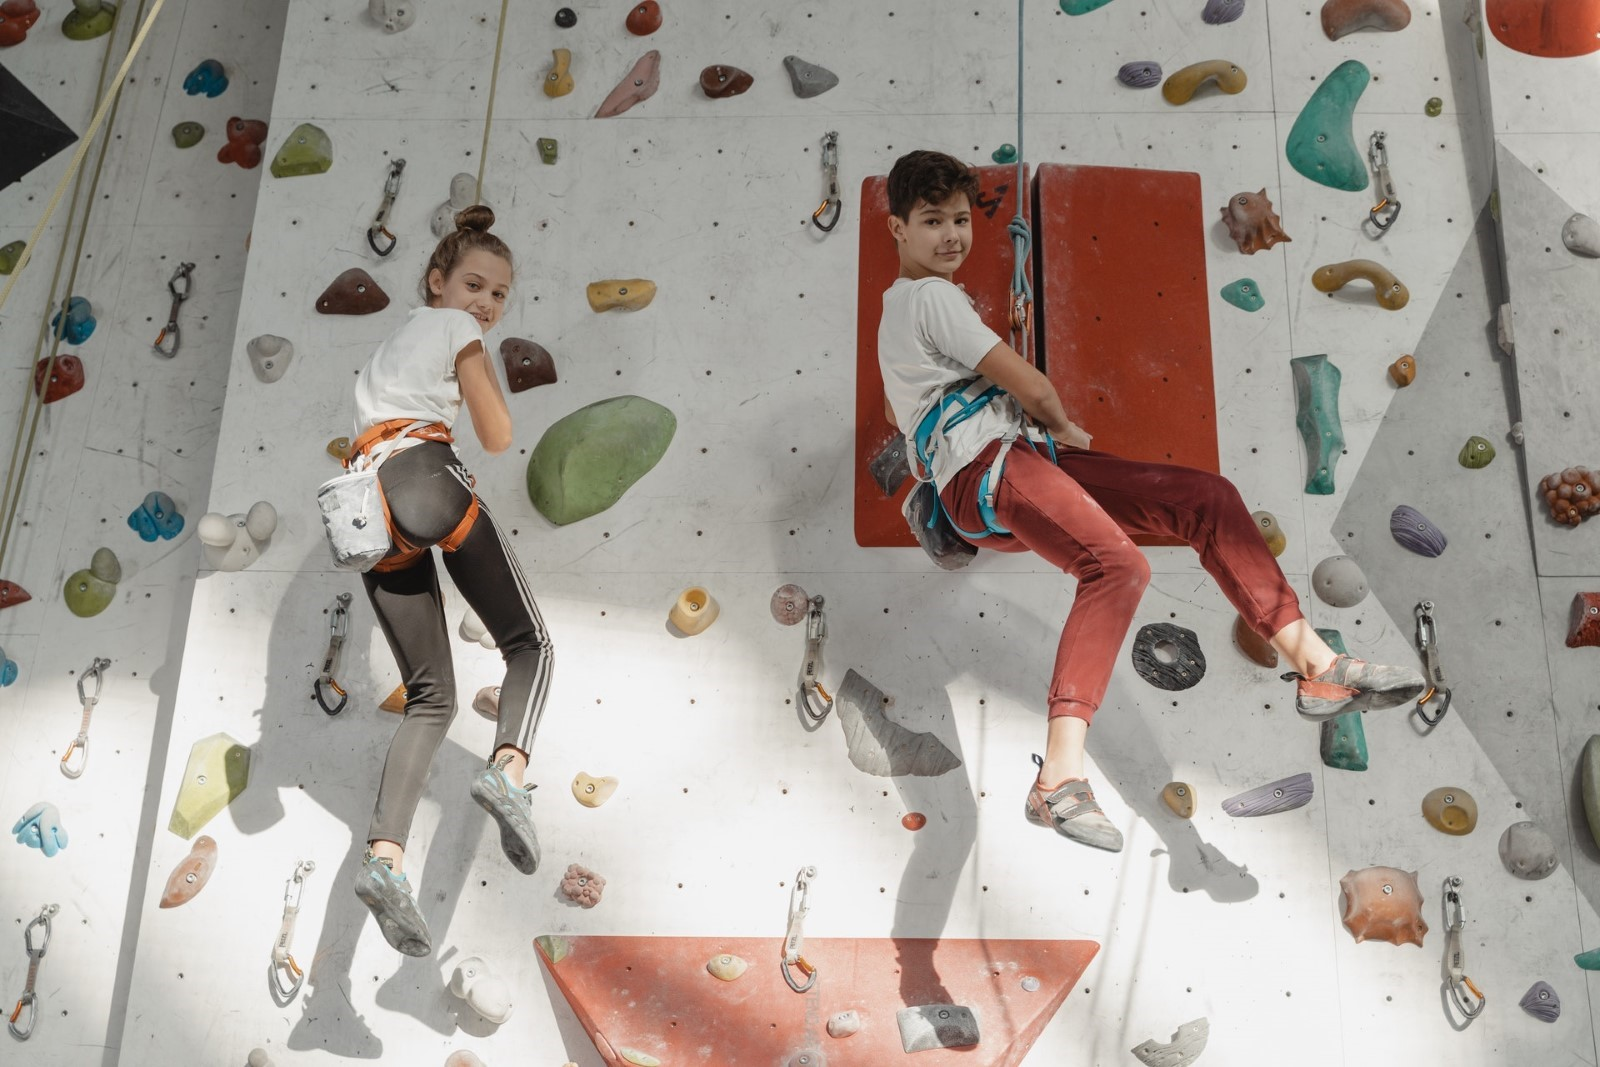 A group of people climbing a rock wall  Description automatically generated